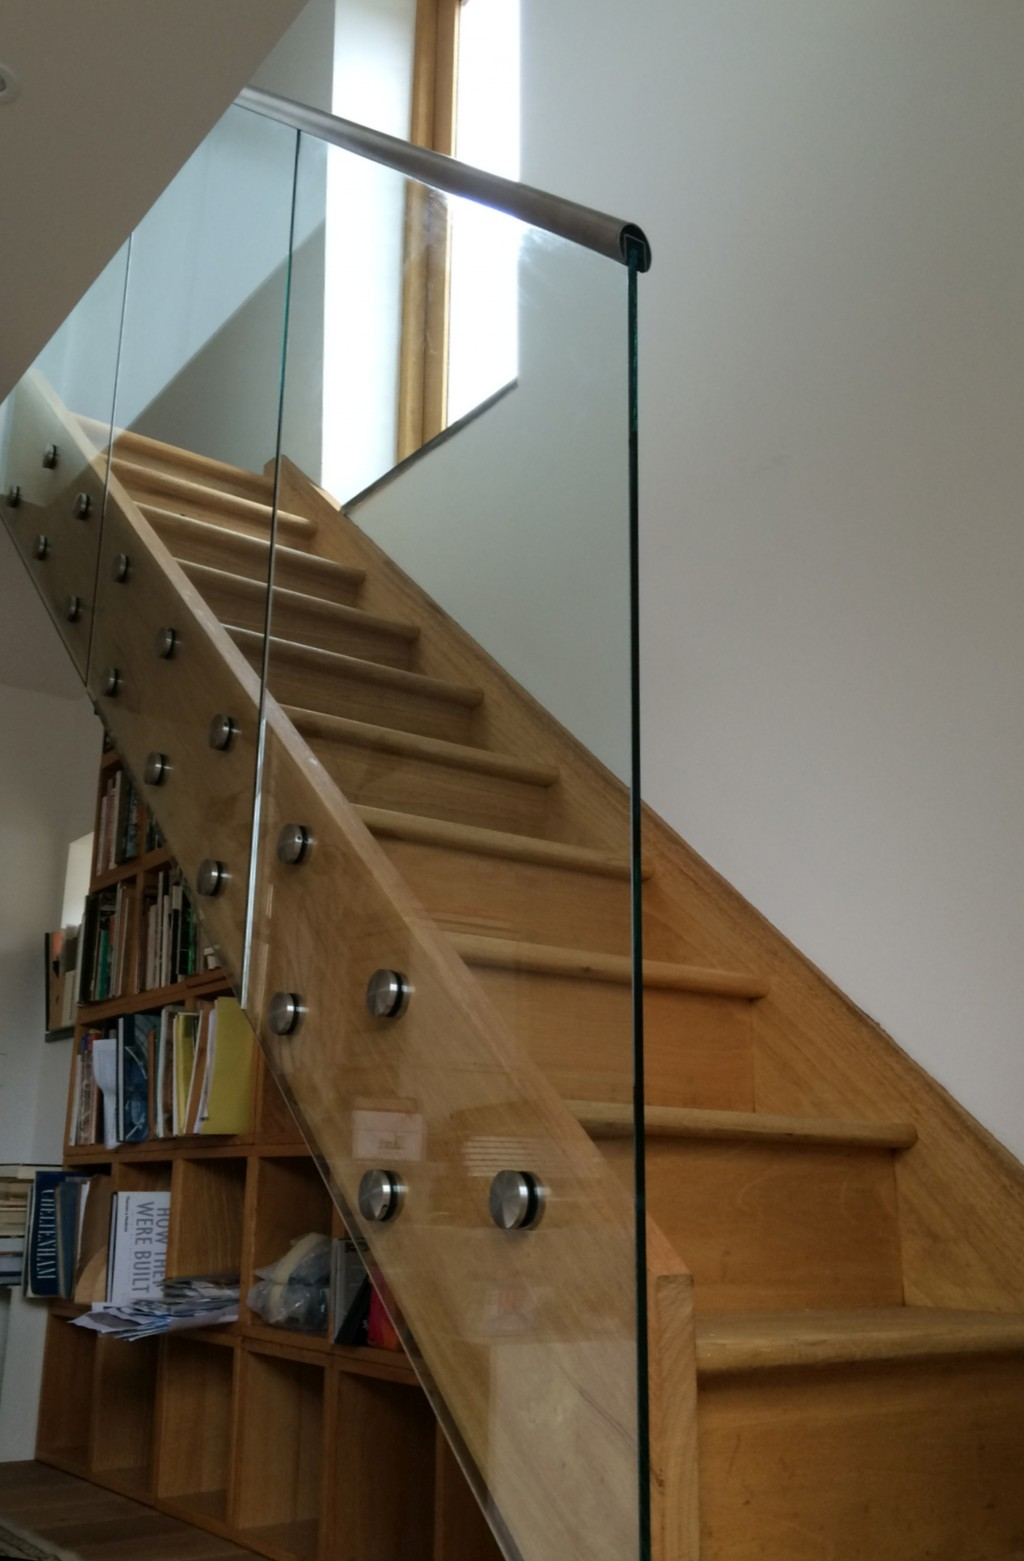 Glass handrail on wooden staircase